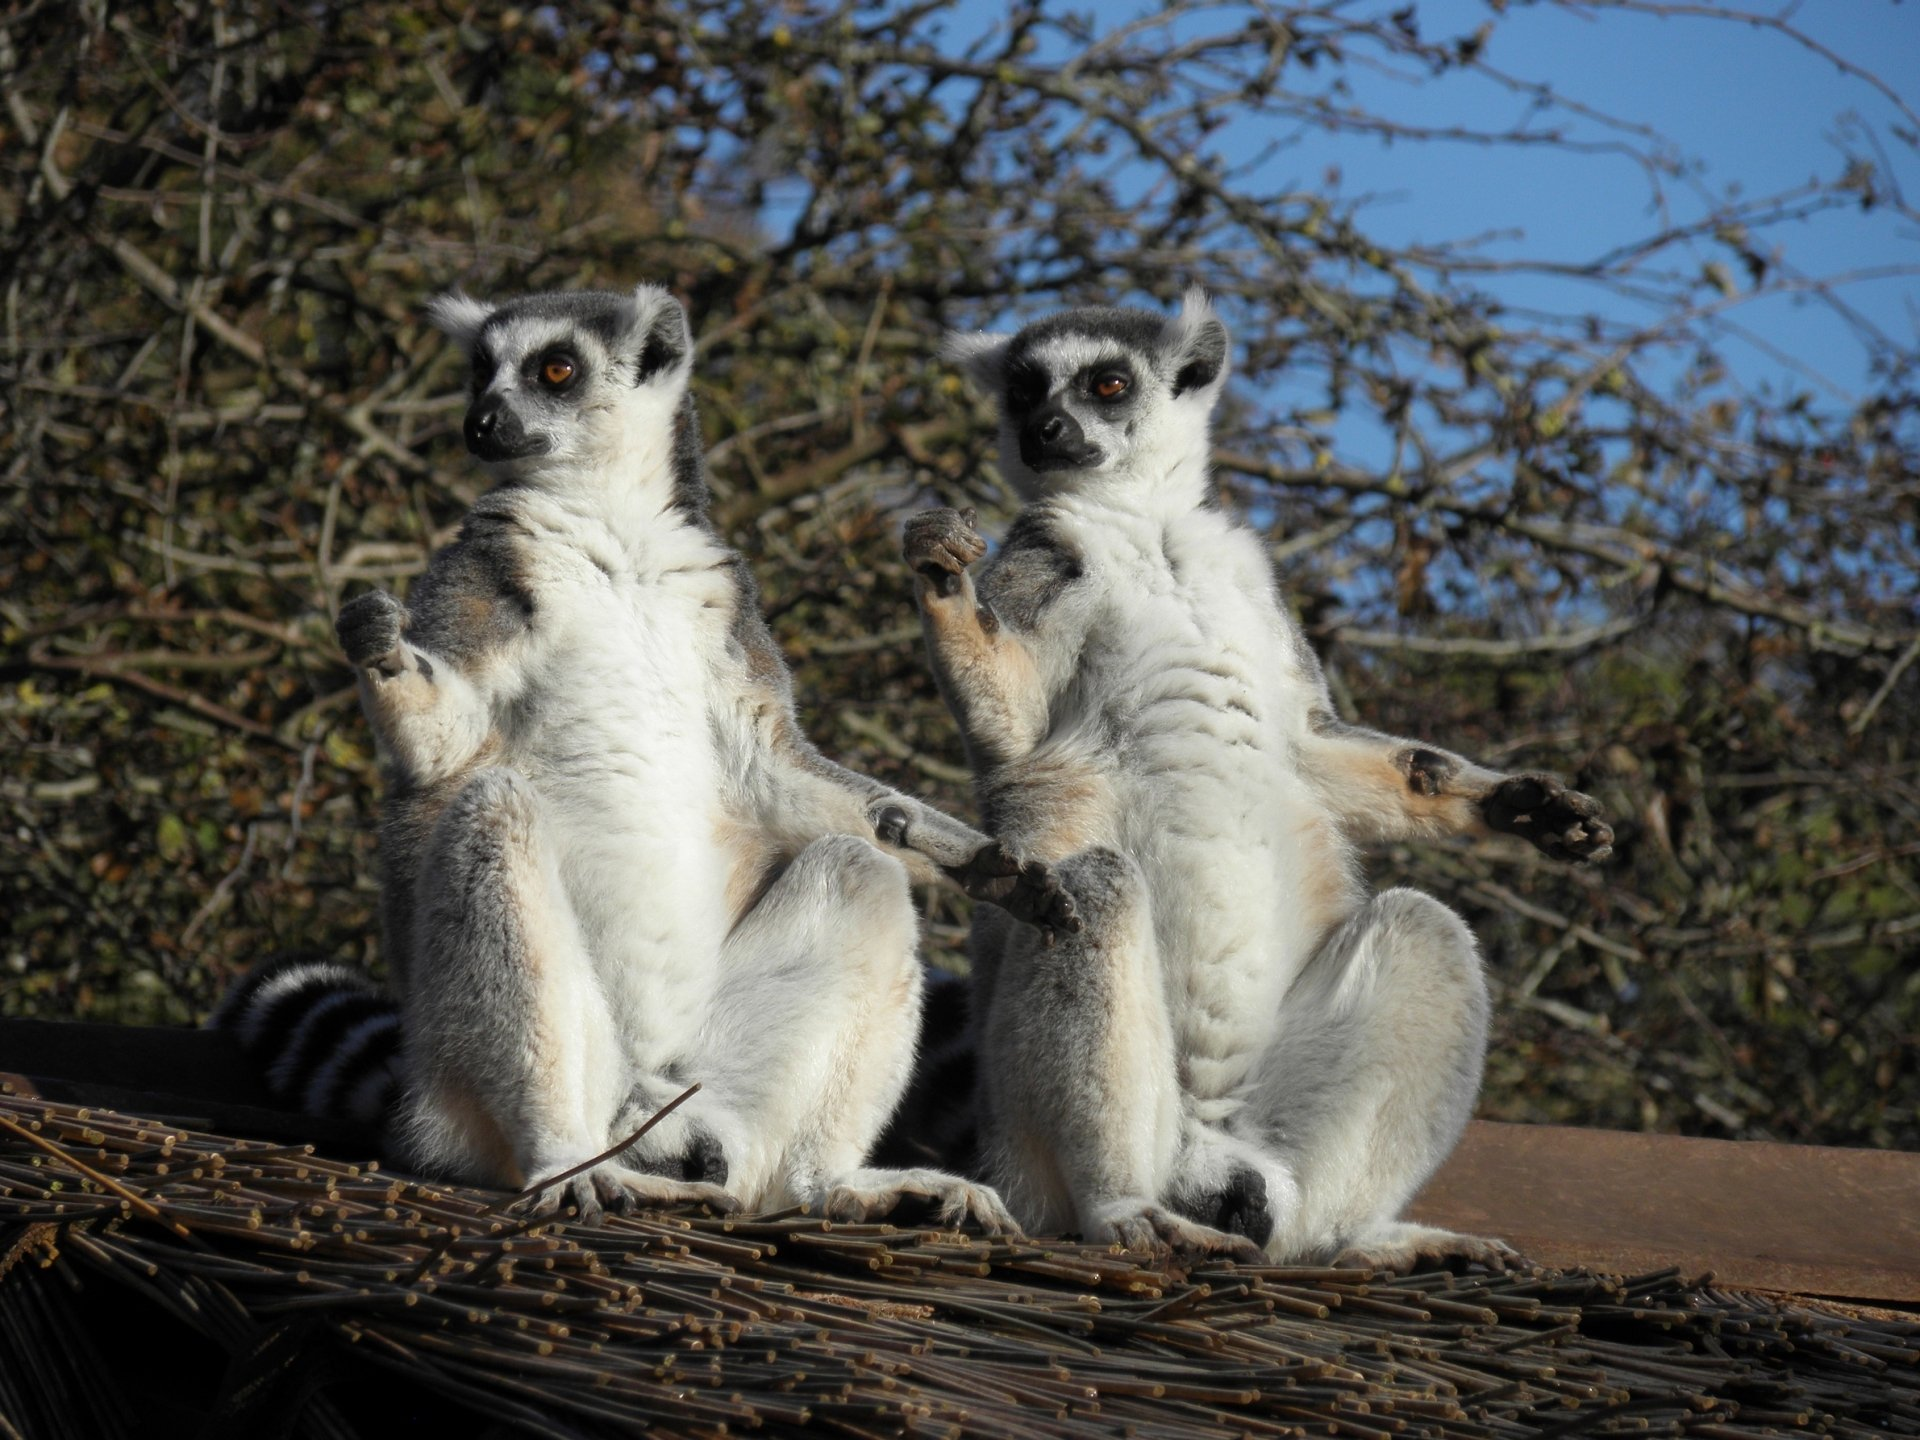 two ringtailed lemurs soaking up the sun hd wallpaper